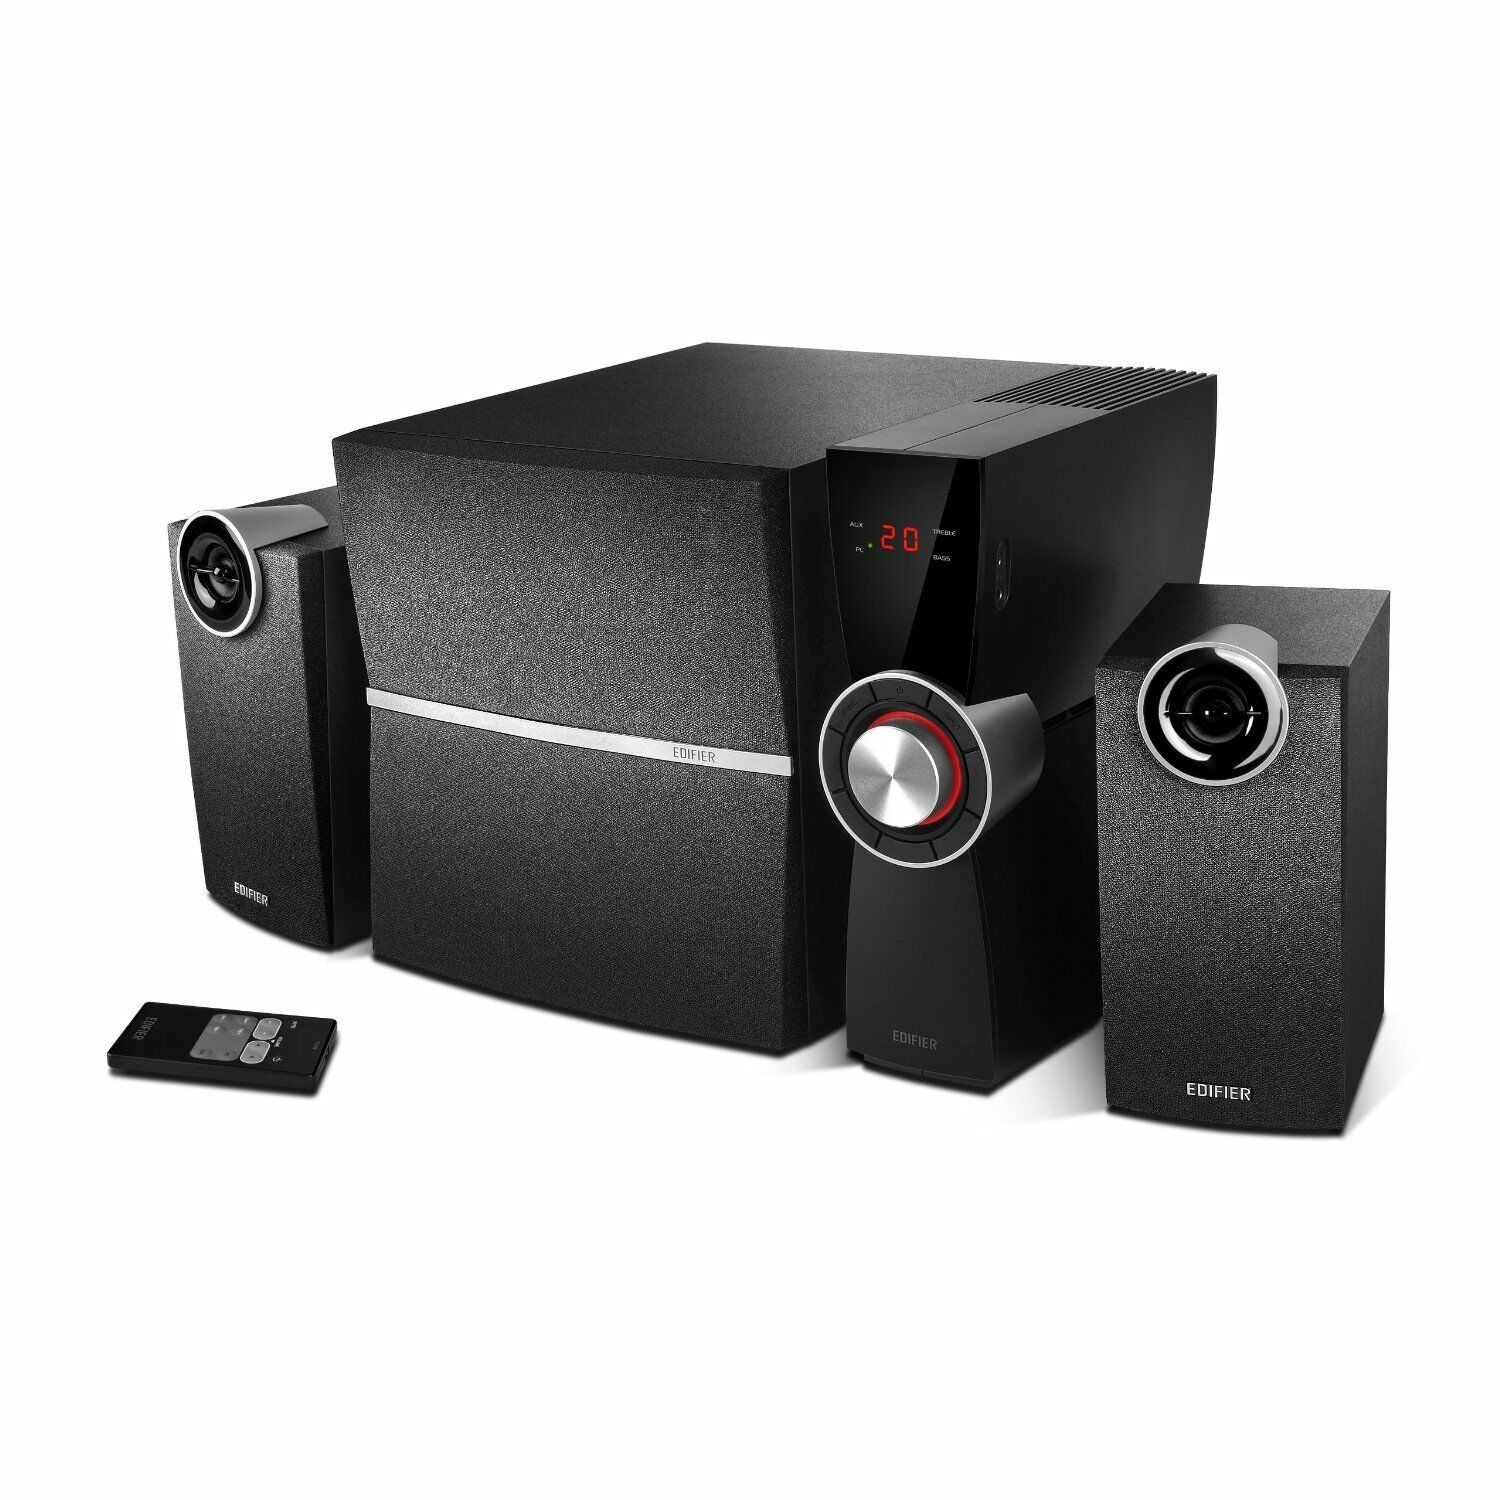 edifier c2x 2 1 soundsystem mit 2x 9w satelliten und 1x 35w subwoofer schwarz eur 89 80. Black Bedroom Furniture Sets. Home Design Ideas